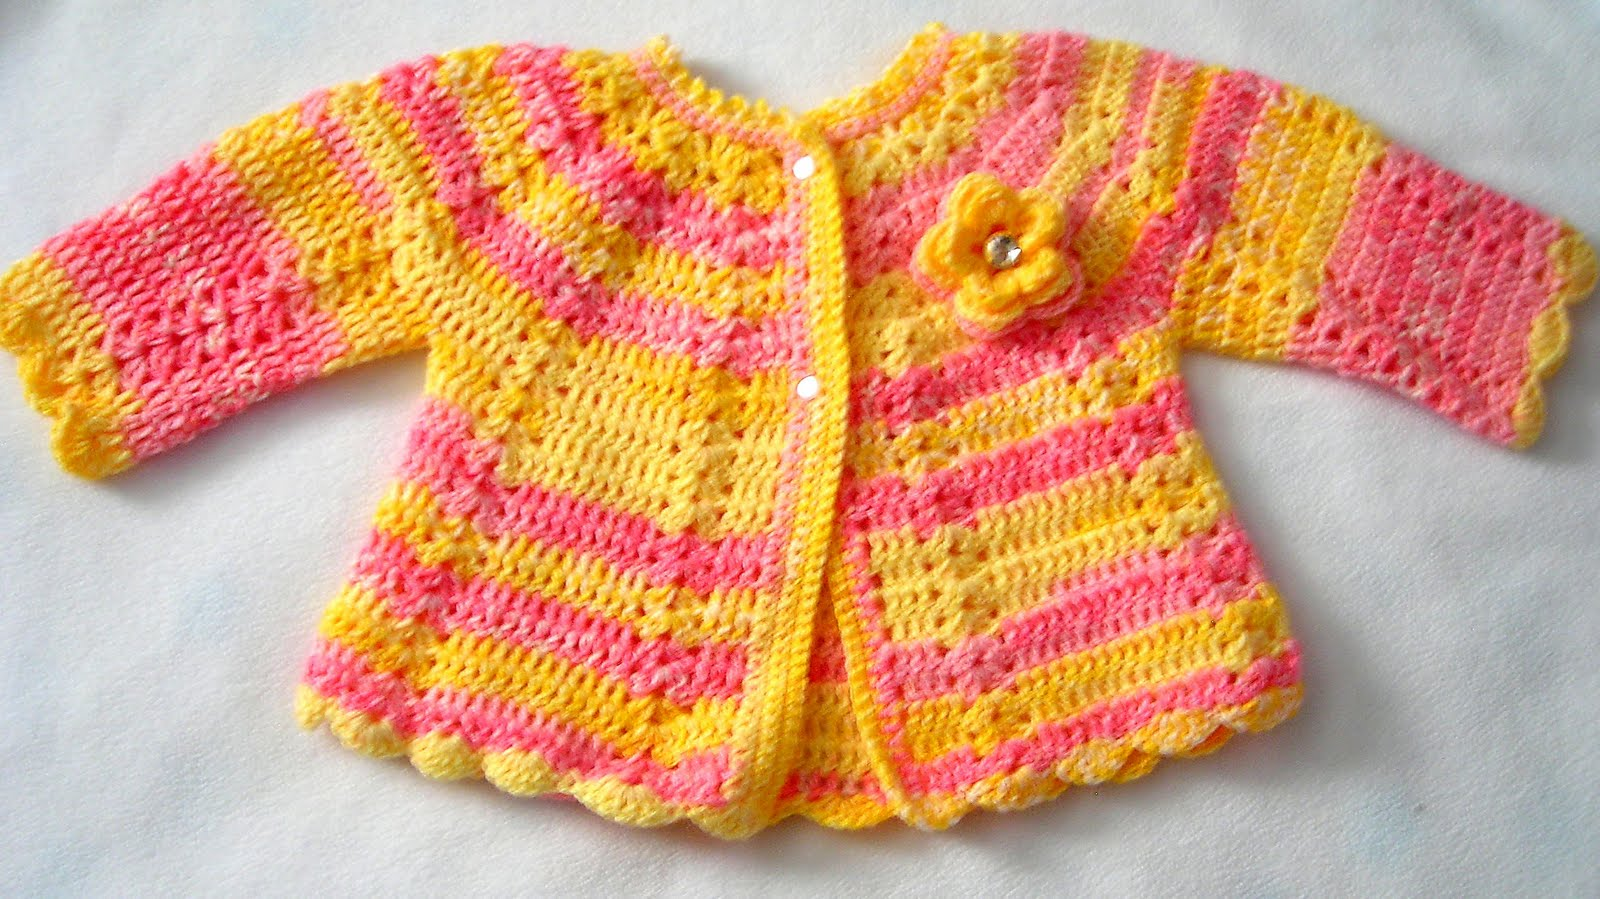 Crafts and Crocheting: Crocheted Baby Sweaters